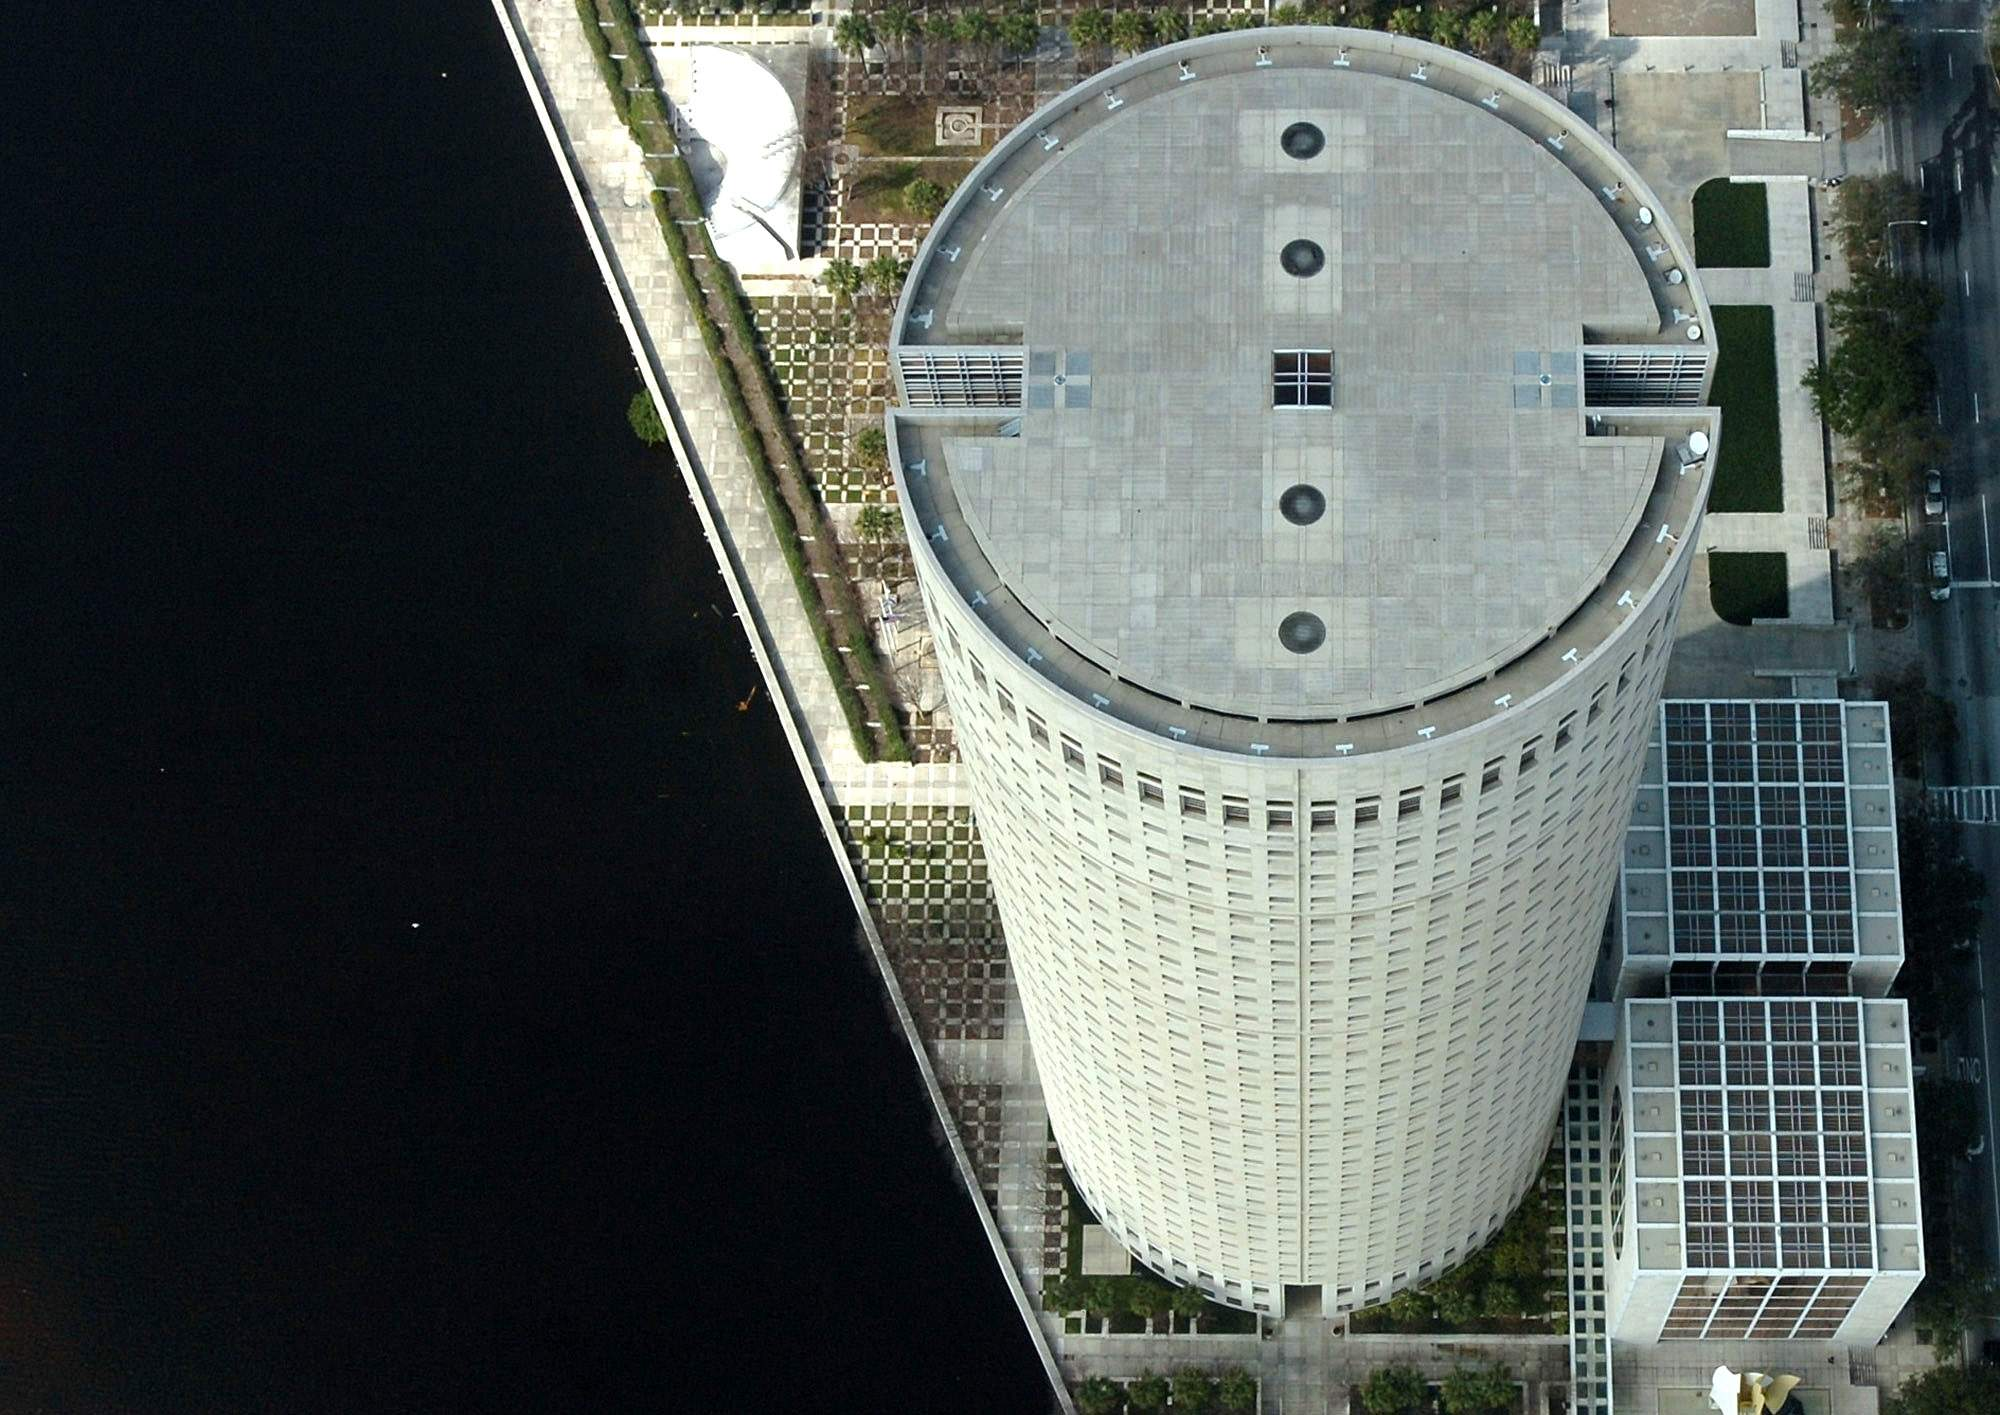 An aerial view of the tower.